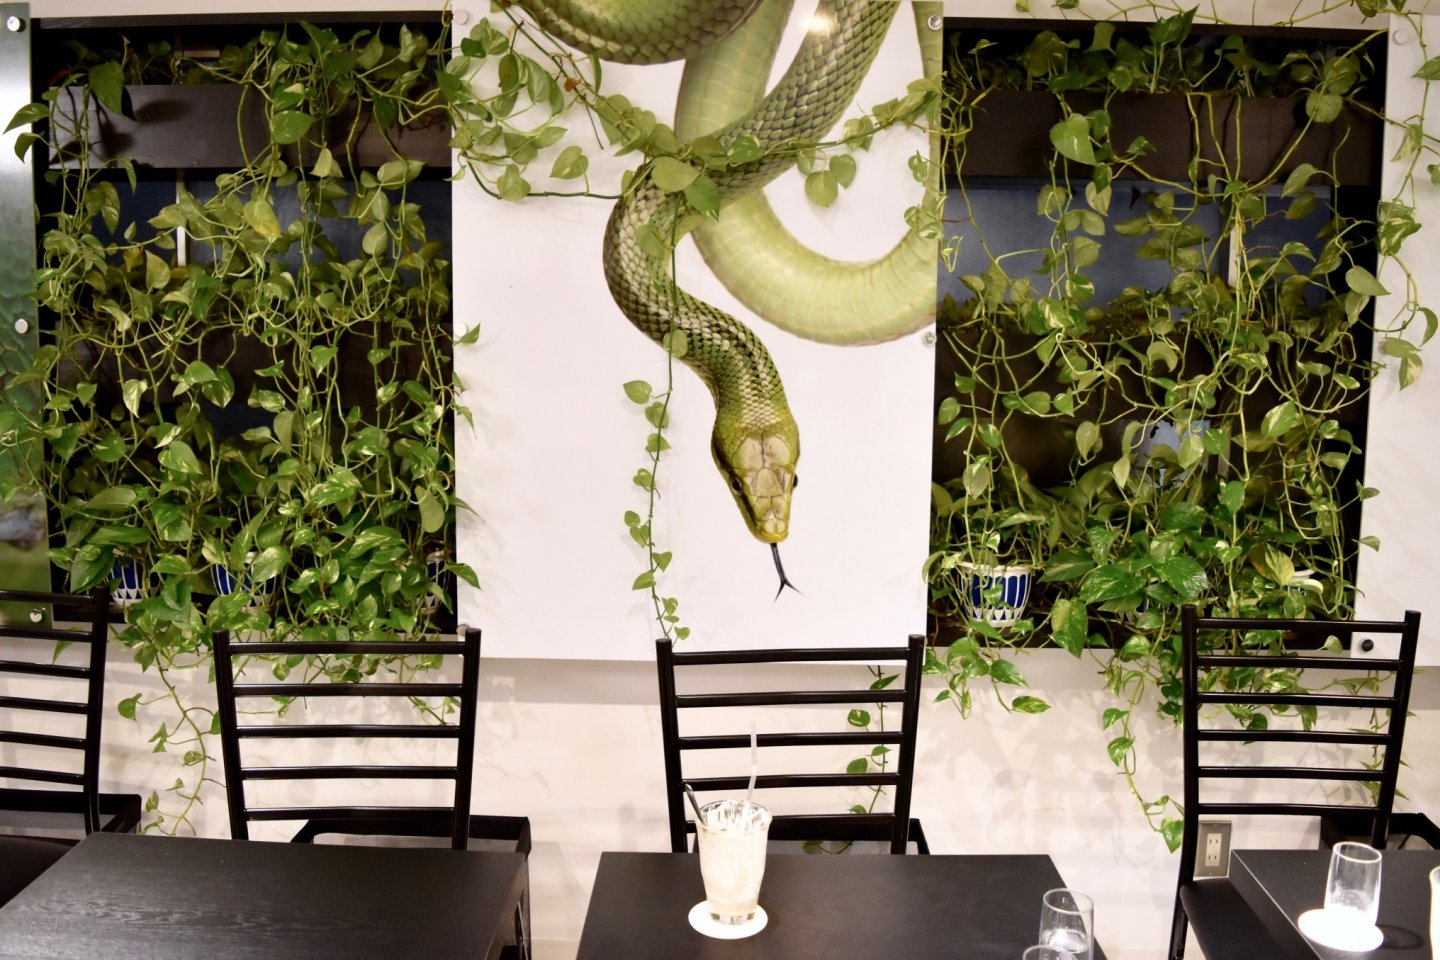 Snake vines and snakes!